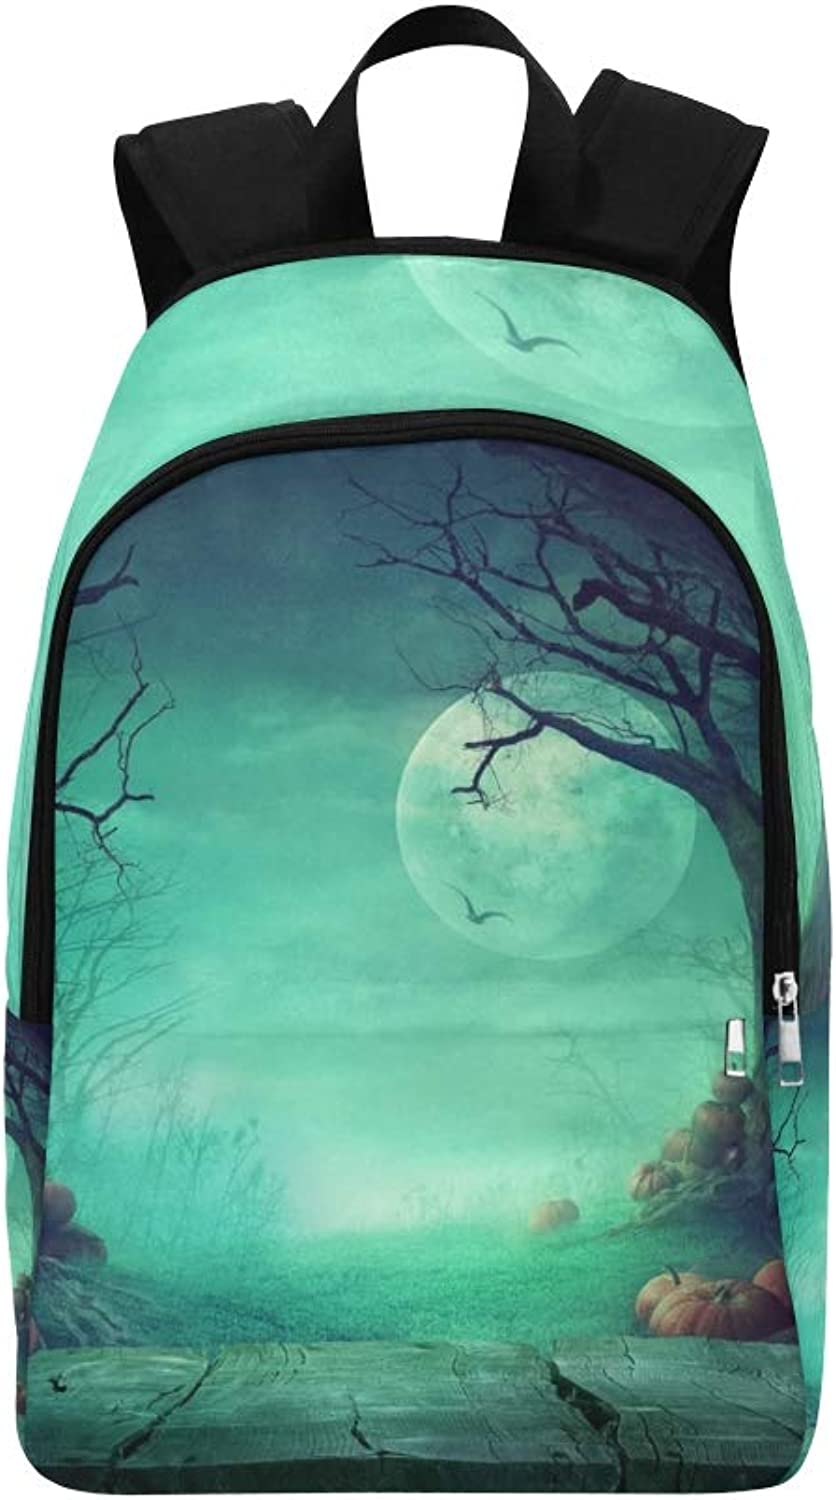 Halloween Spooky Forest Dead Trees Casual Daypack Travel Bag College School Backpack for Mens and Women